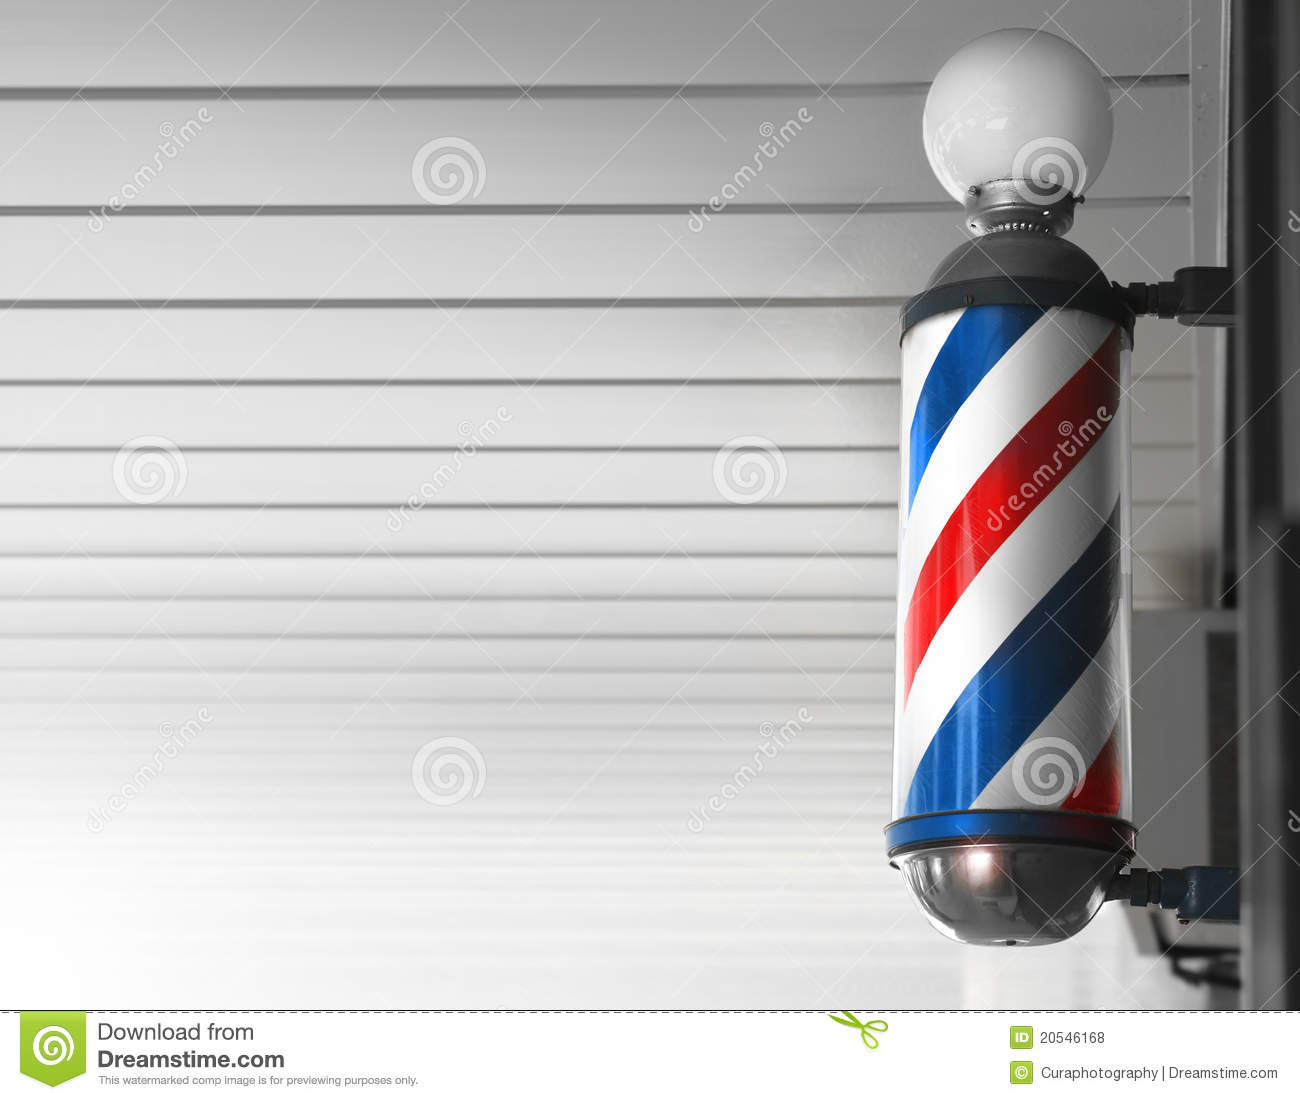 barber background - photo #6